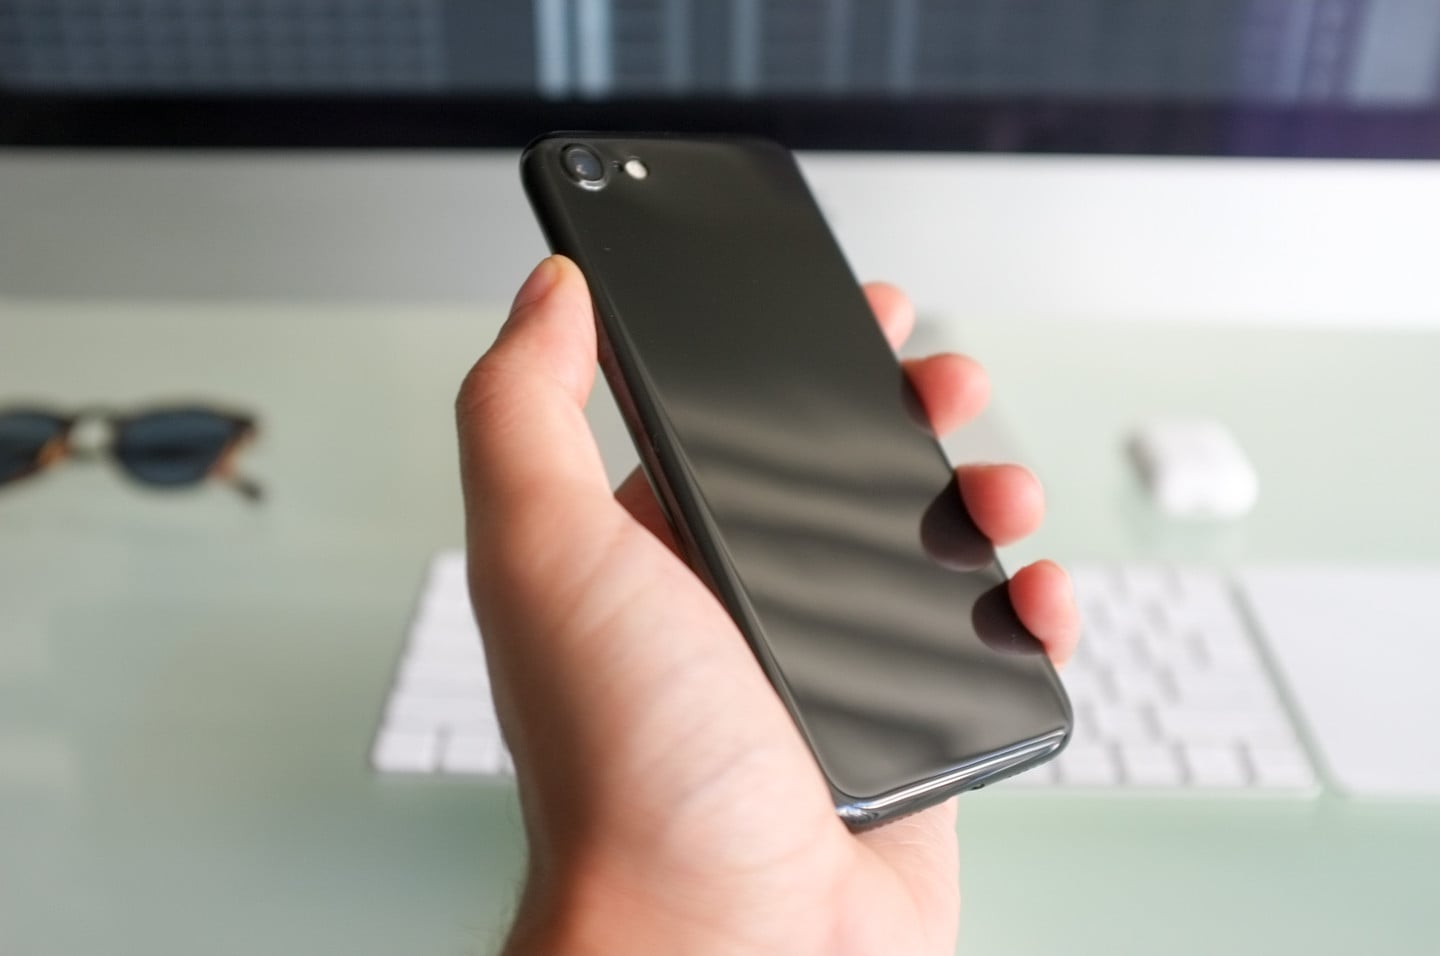 iPhone 7 Jet Black Hand